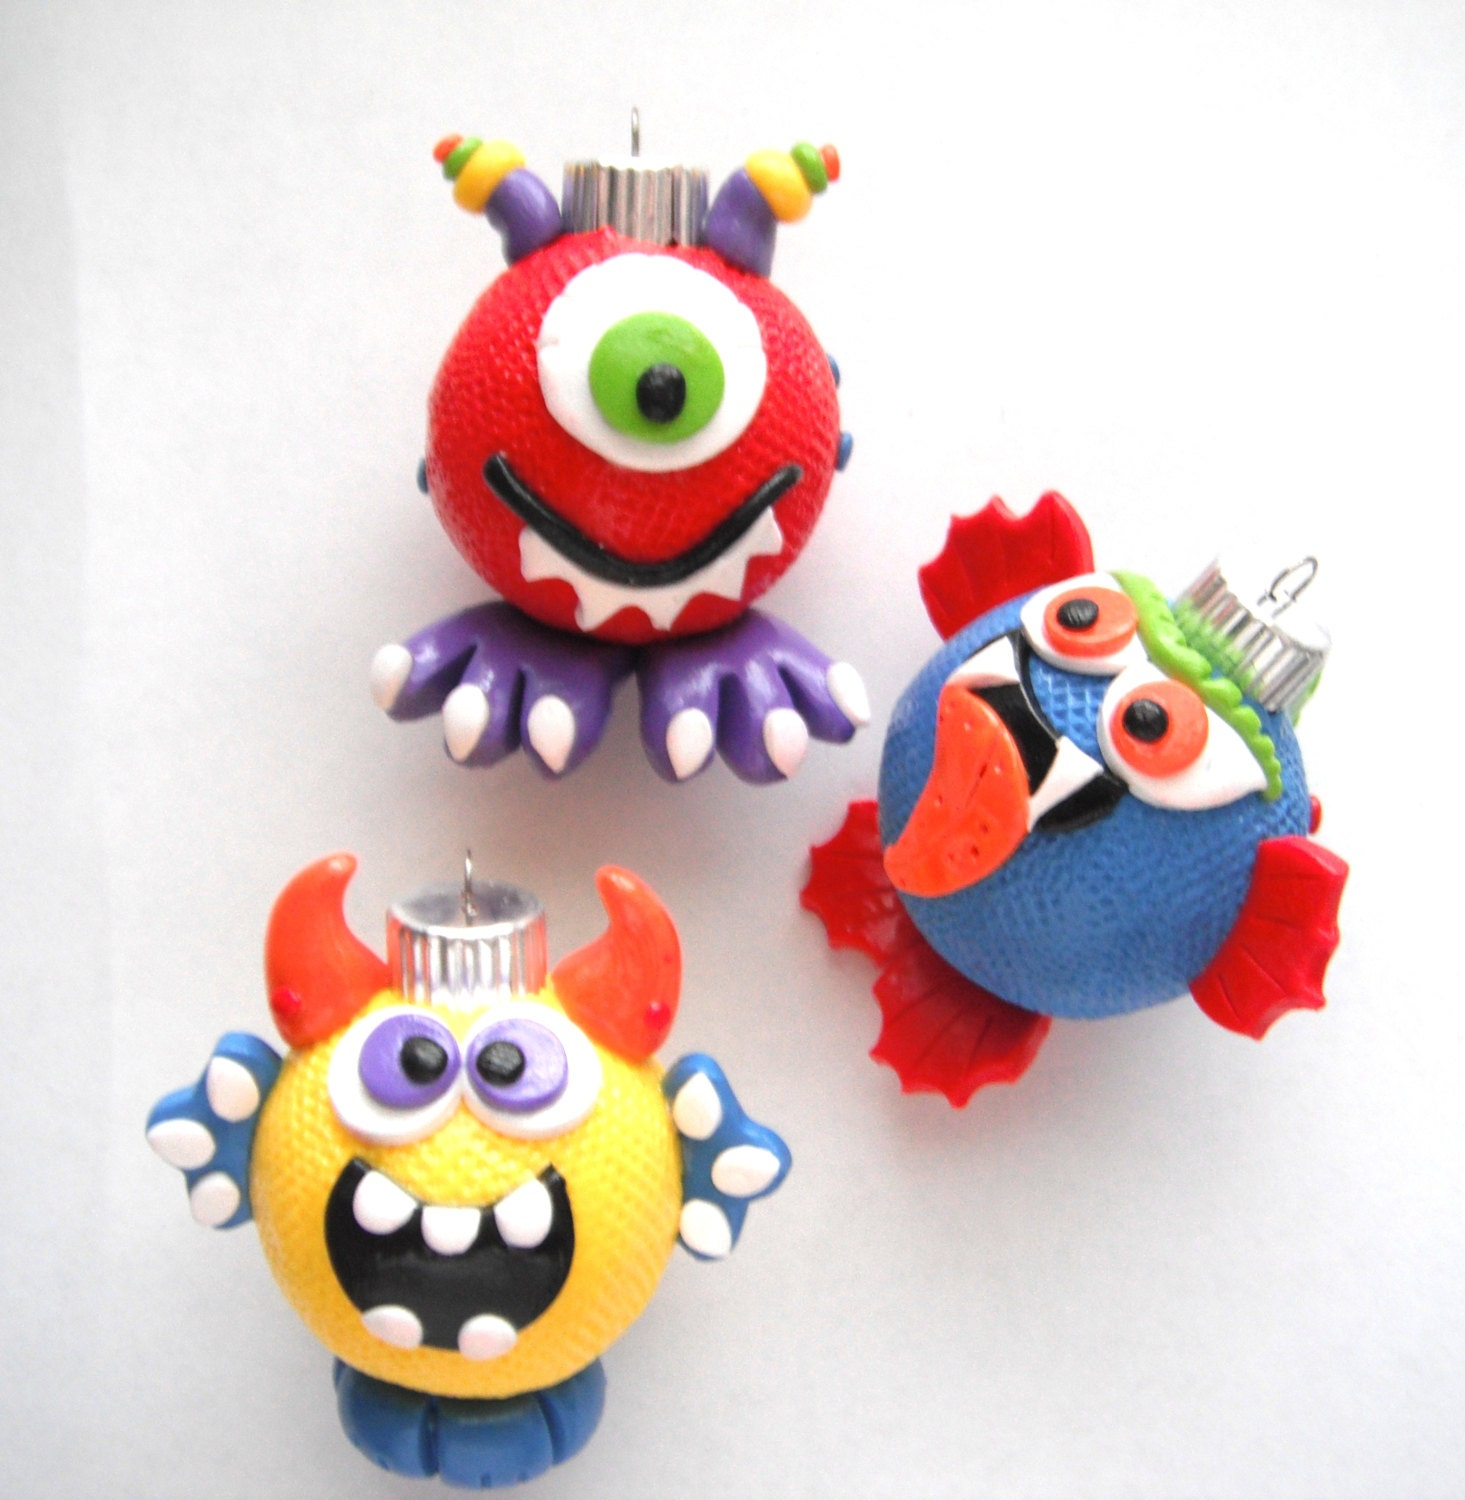 Handmade glass christmas ornaments - Ornaments Little Monsters Handmade Glass Polymer Clay Christmas Ornaments 3 Zoom